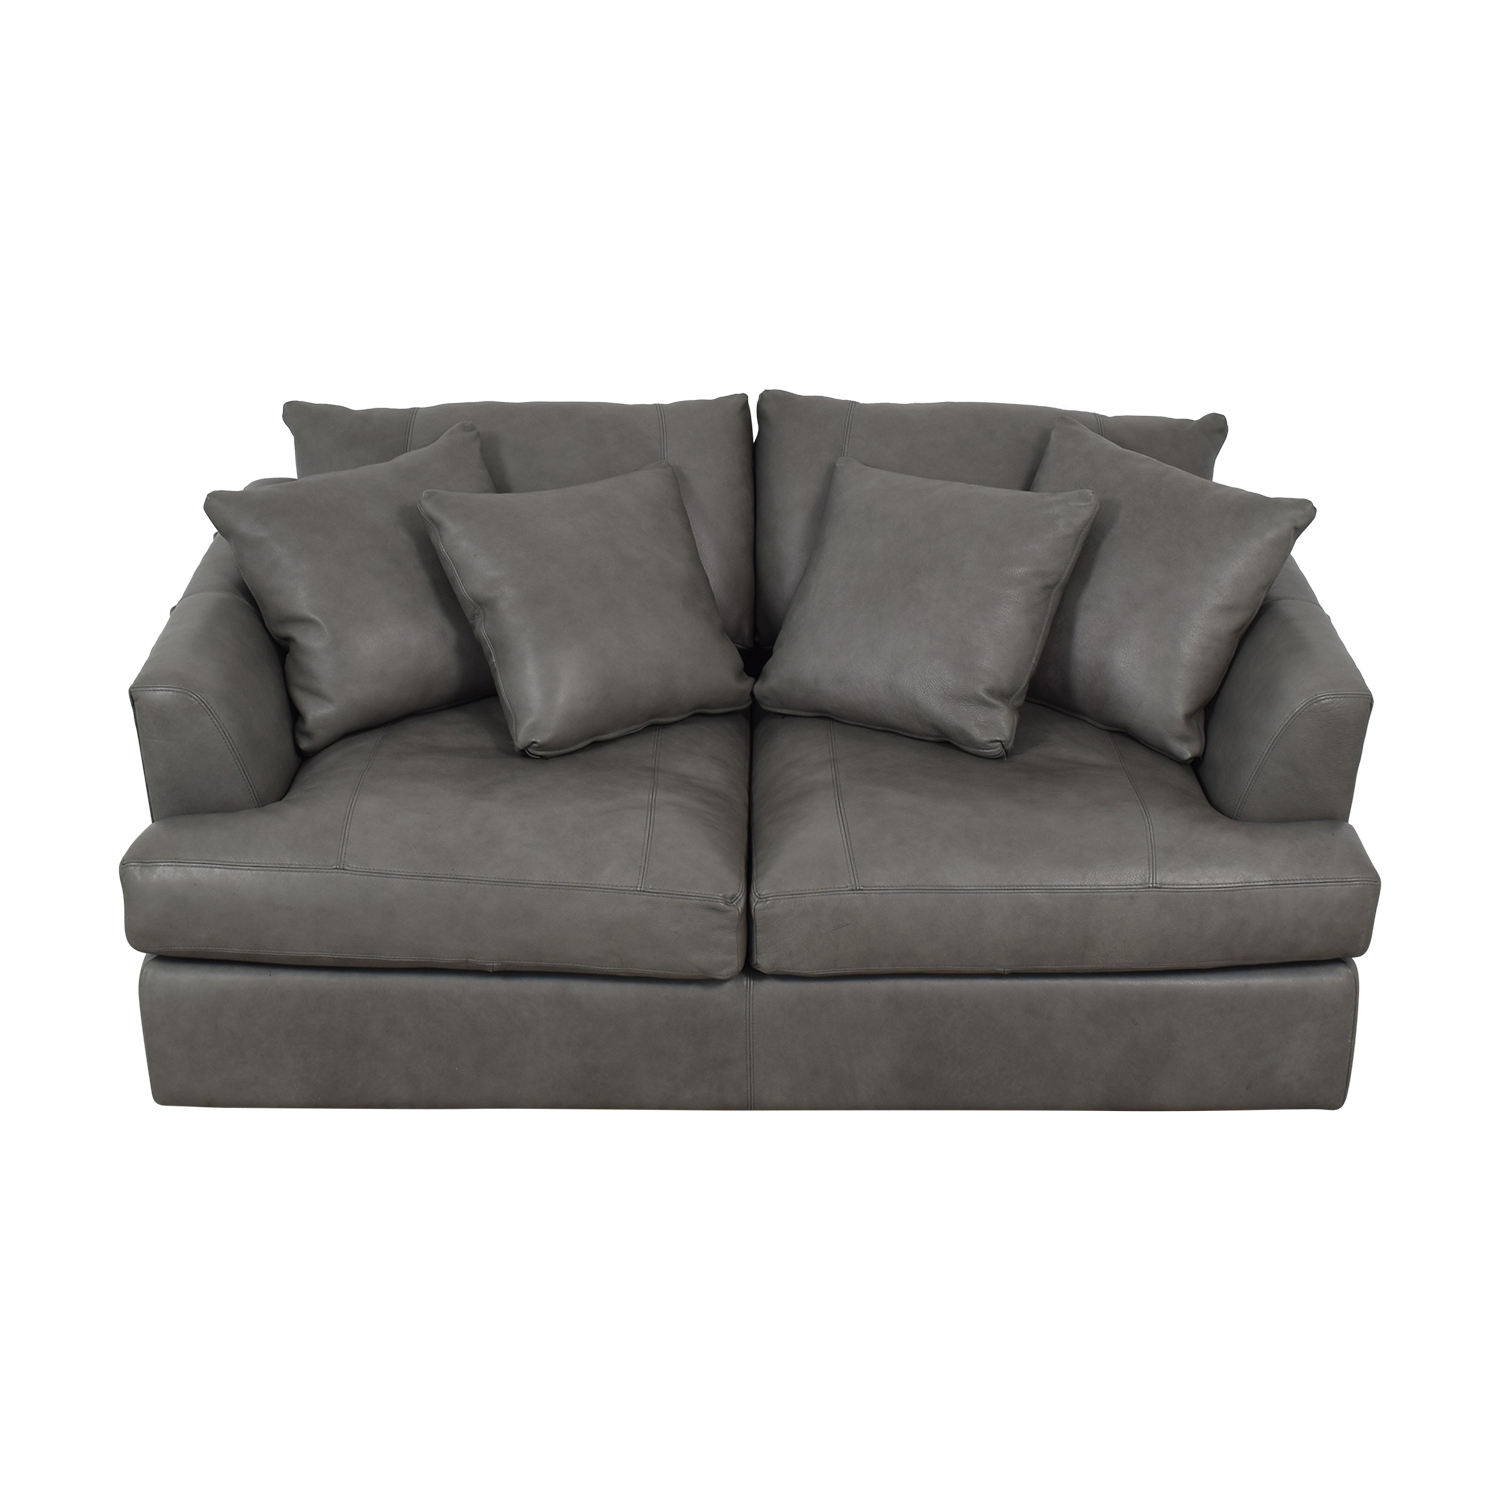 Arhaus Arhaus Emory Deep Leather Sofa dimensions